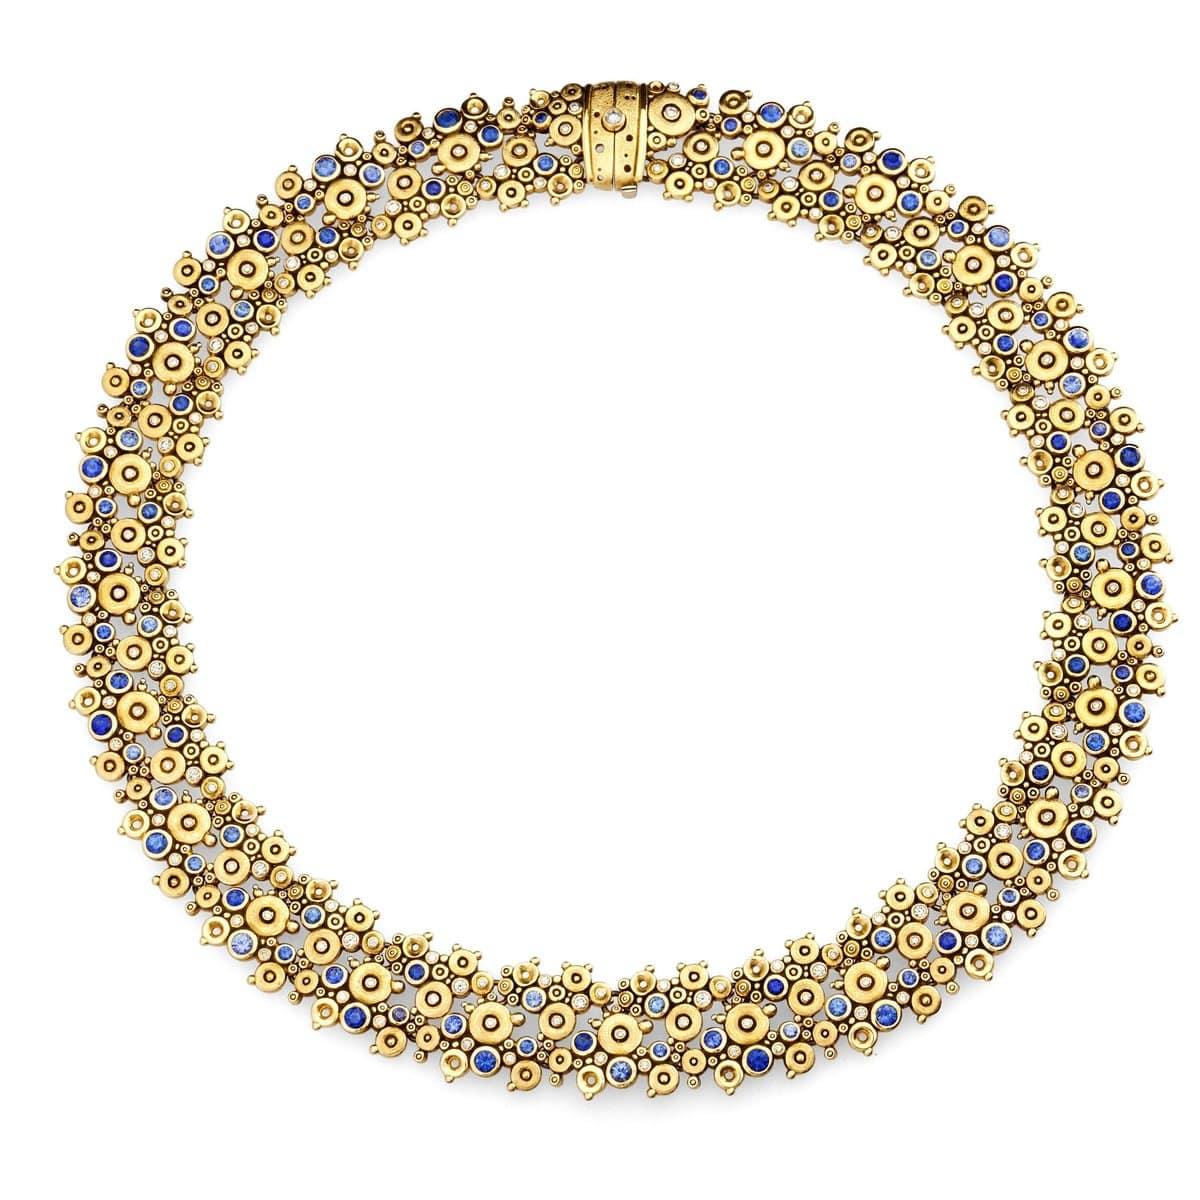 18K Lace Blue Mix Sapphire & Diamond Necklace - N-34S-Alex Sepkus-Renee Taylor Gallery